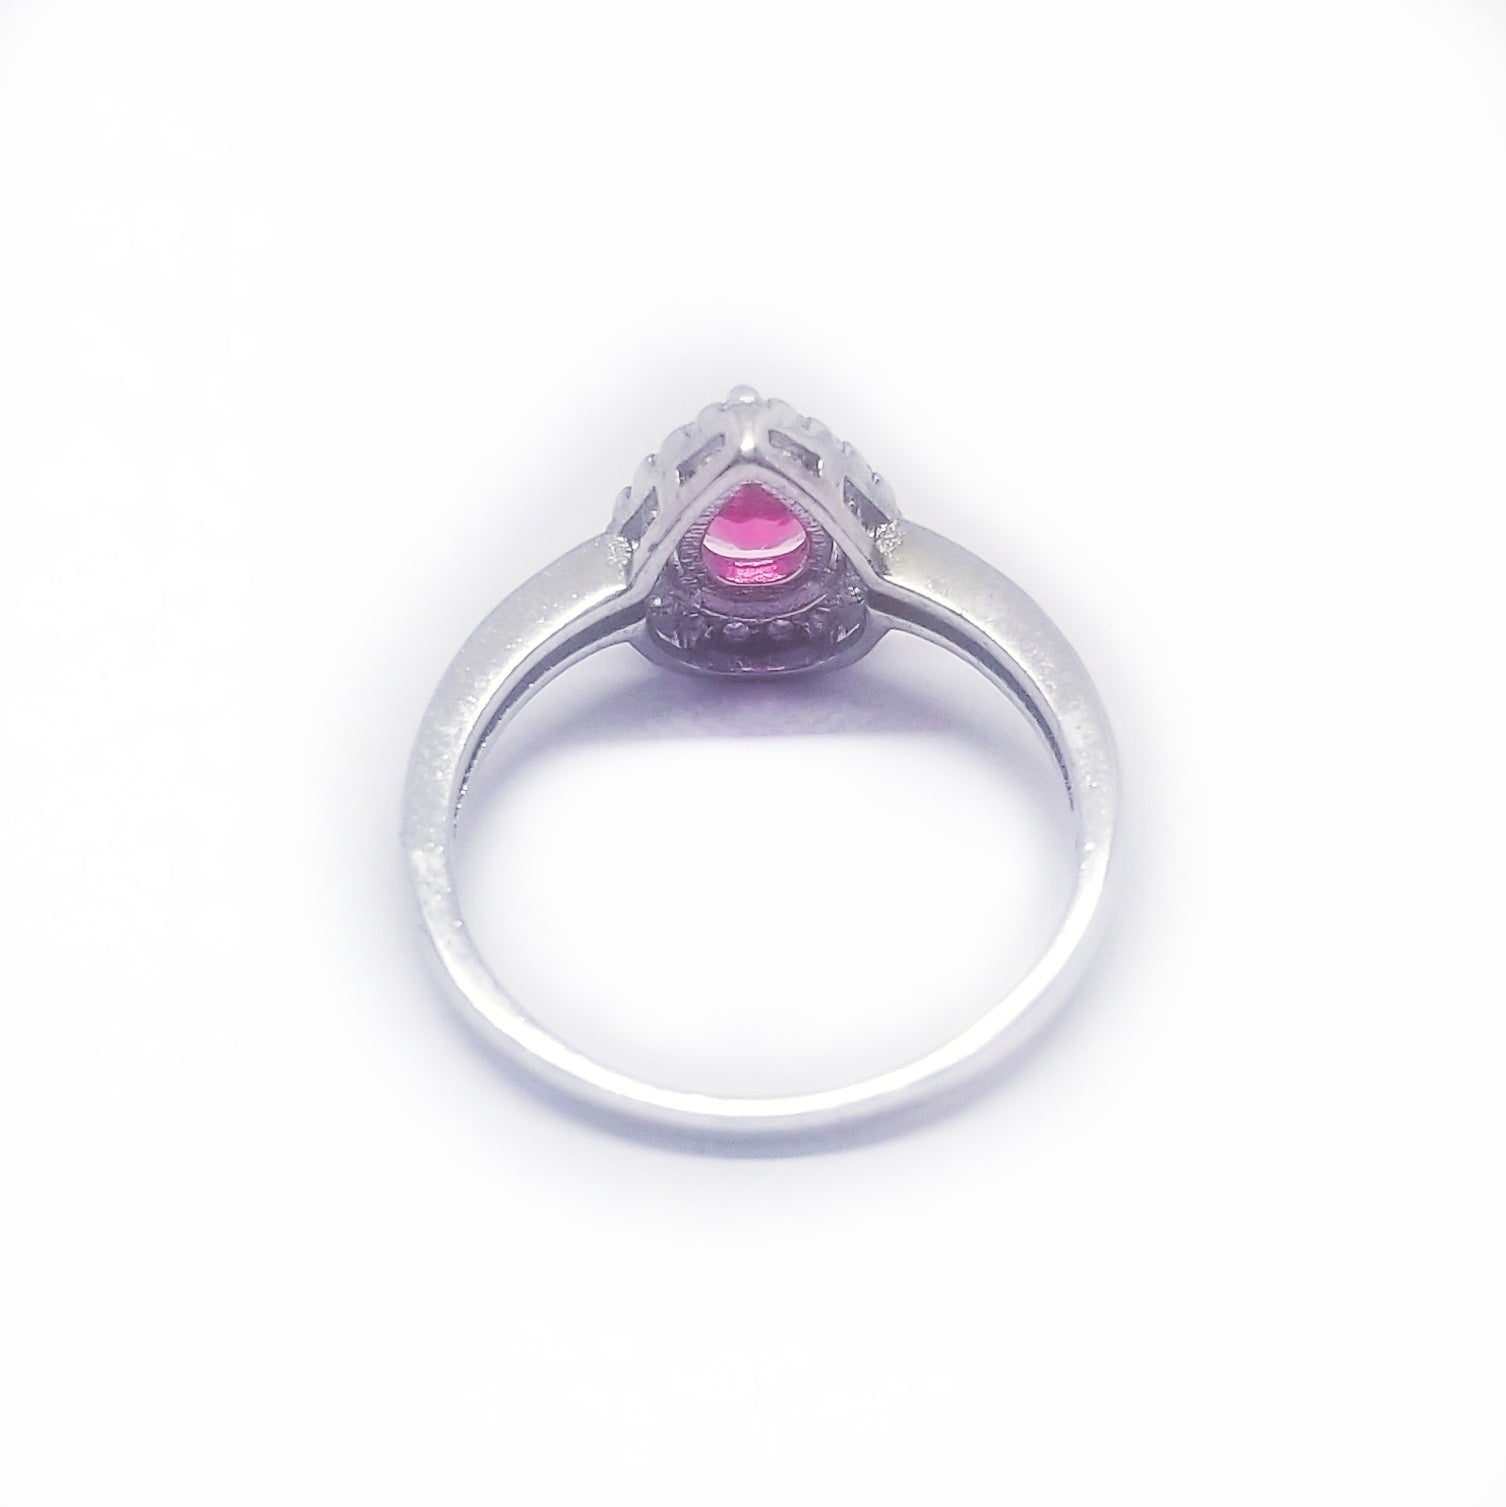 Posterior look of the sterling silver ring